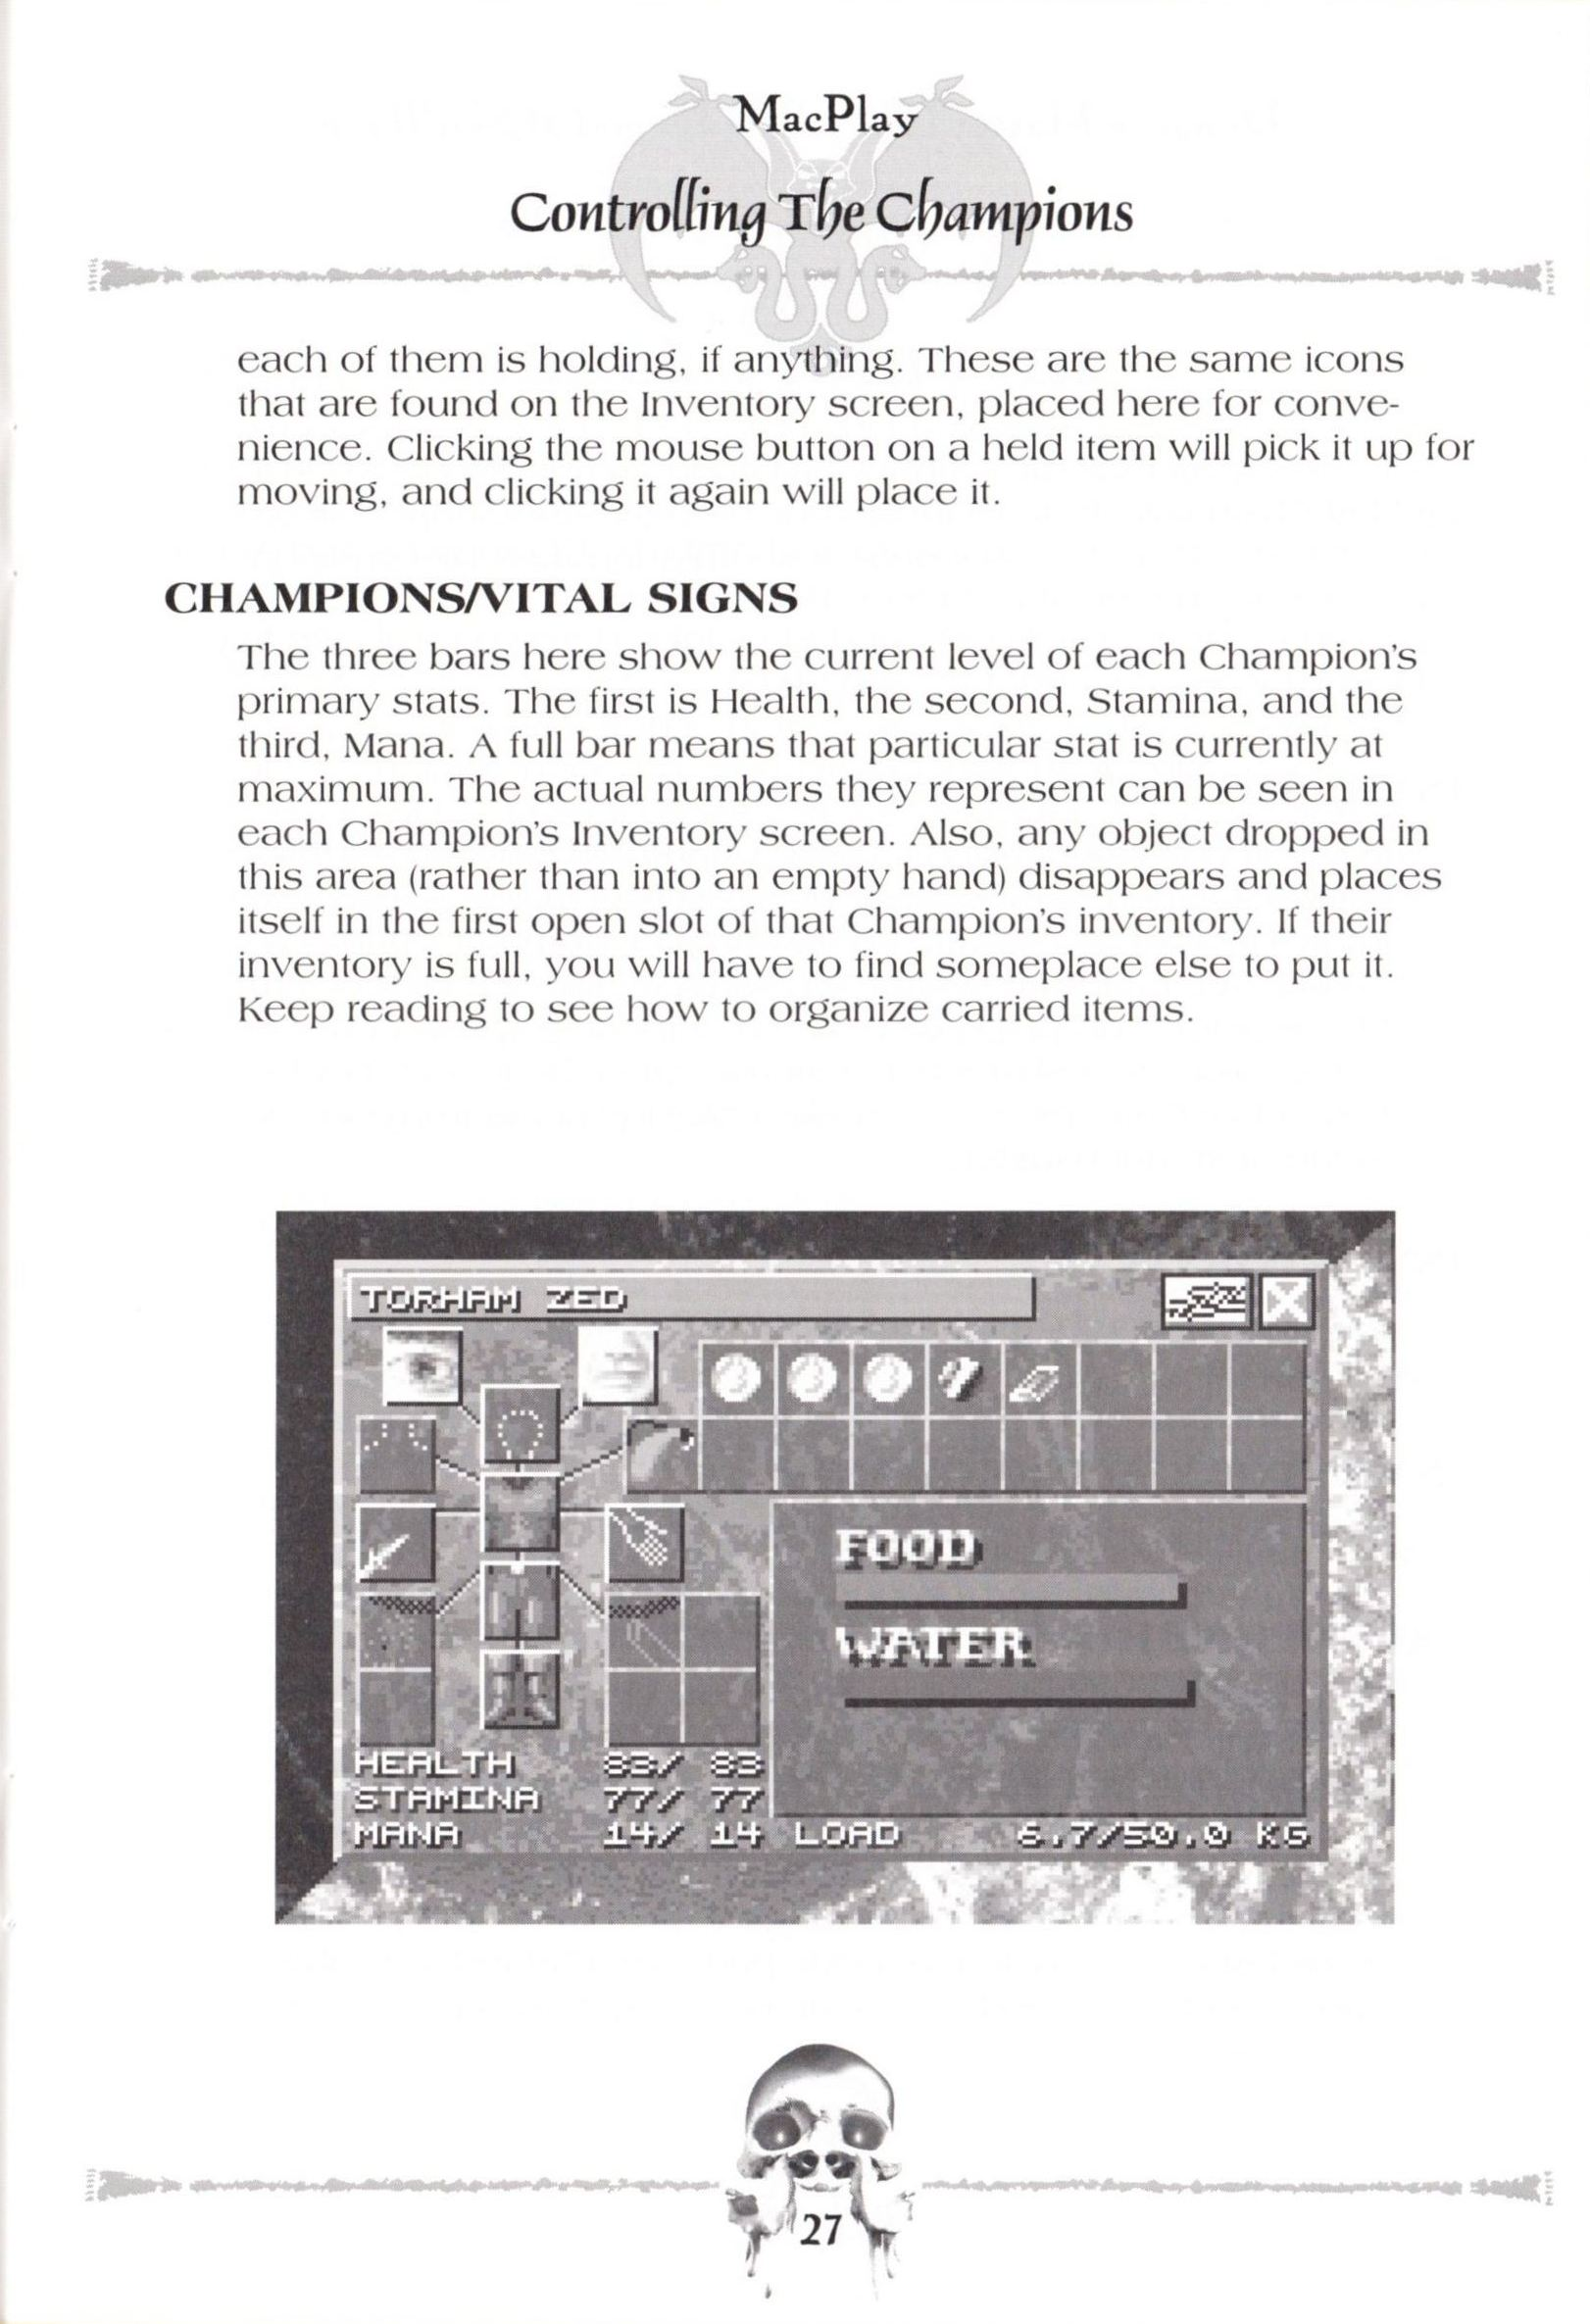 Game - Dungeon Master II - US - Macintosh - Manual - Page 029 - Scan